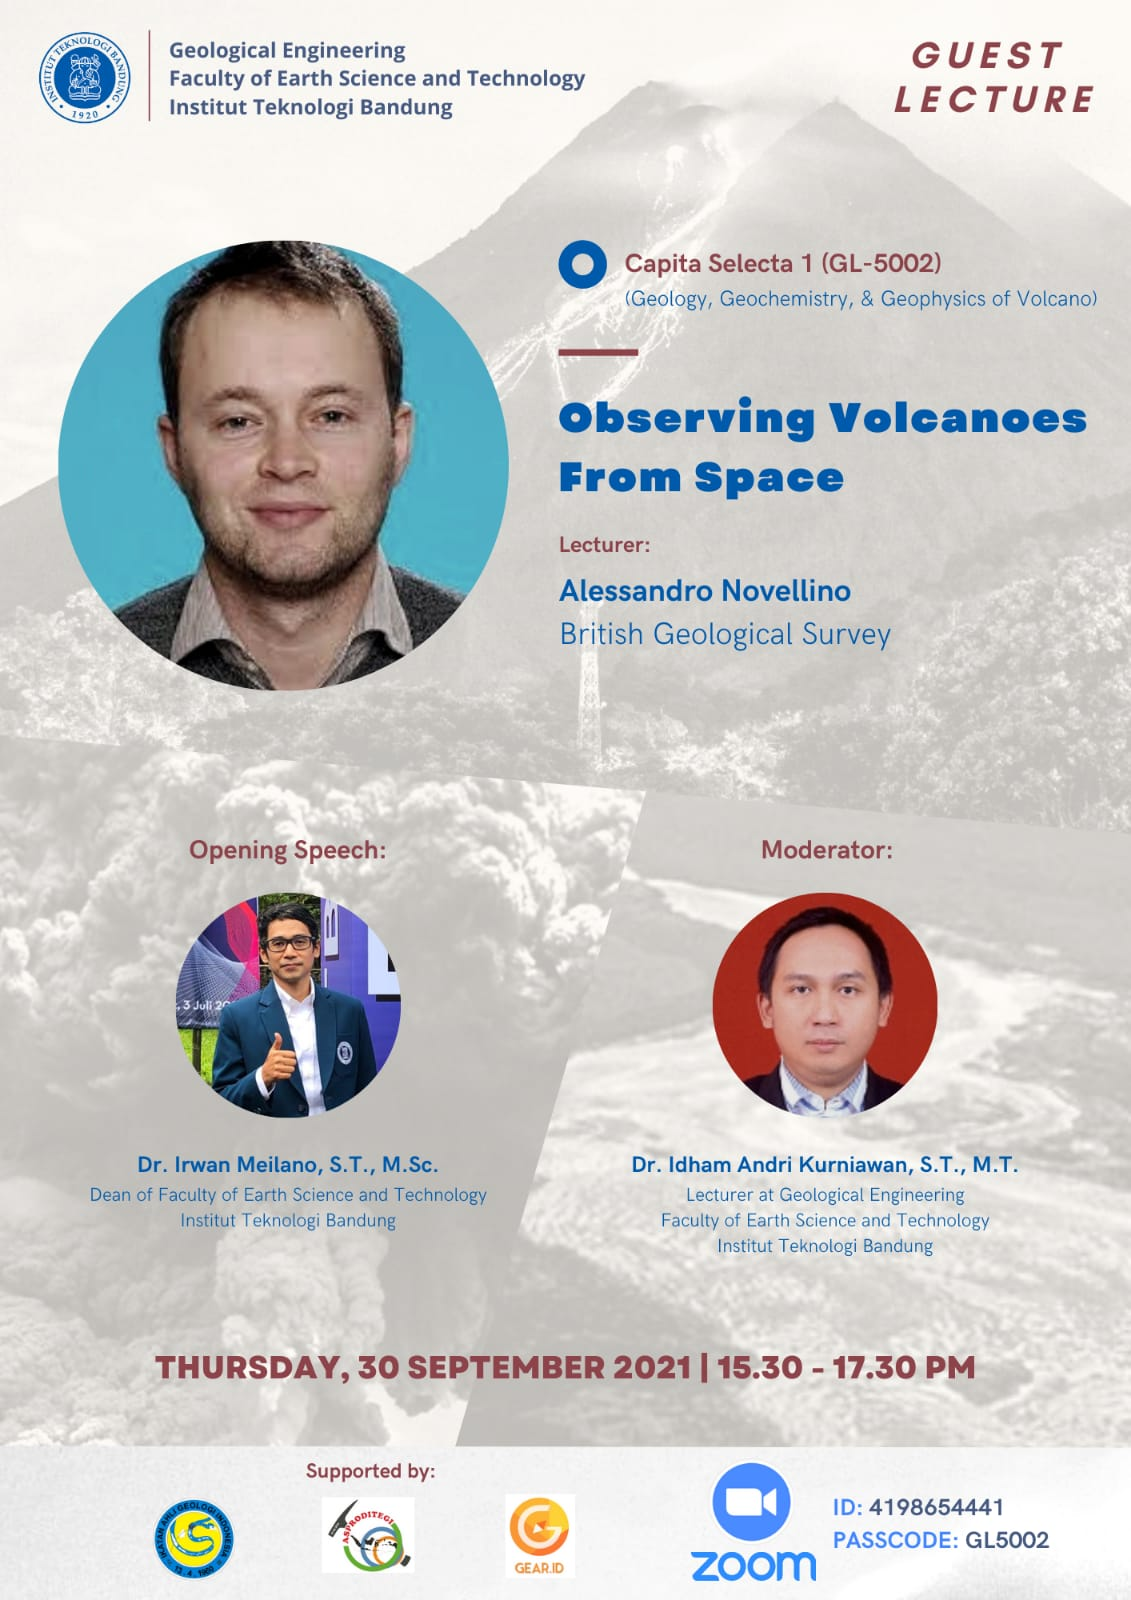 Observing Volcanoes from Space. Guest Lecturer :  Alessandro Novellino (British Geological Survey)